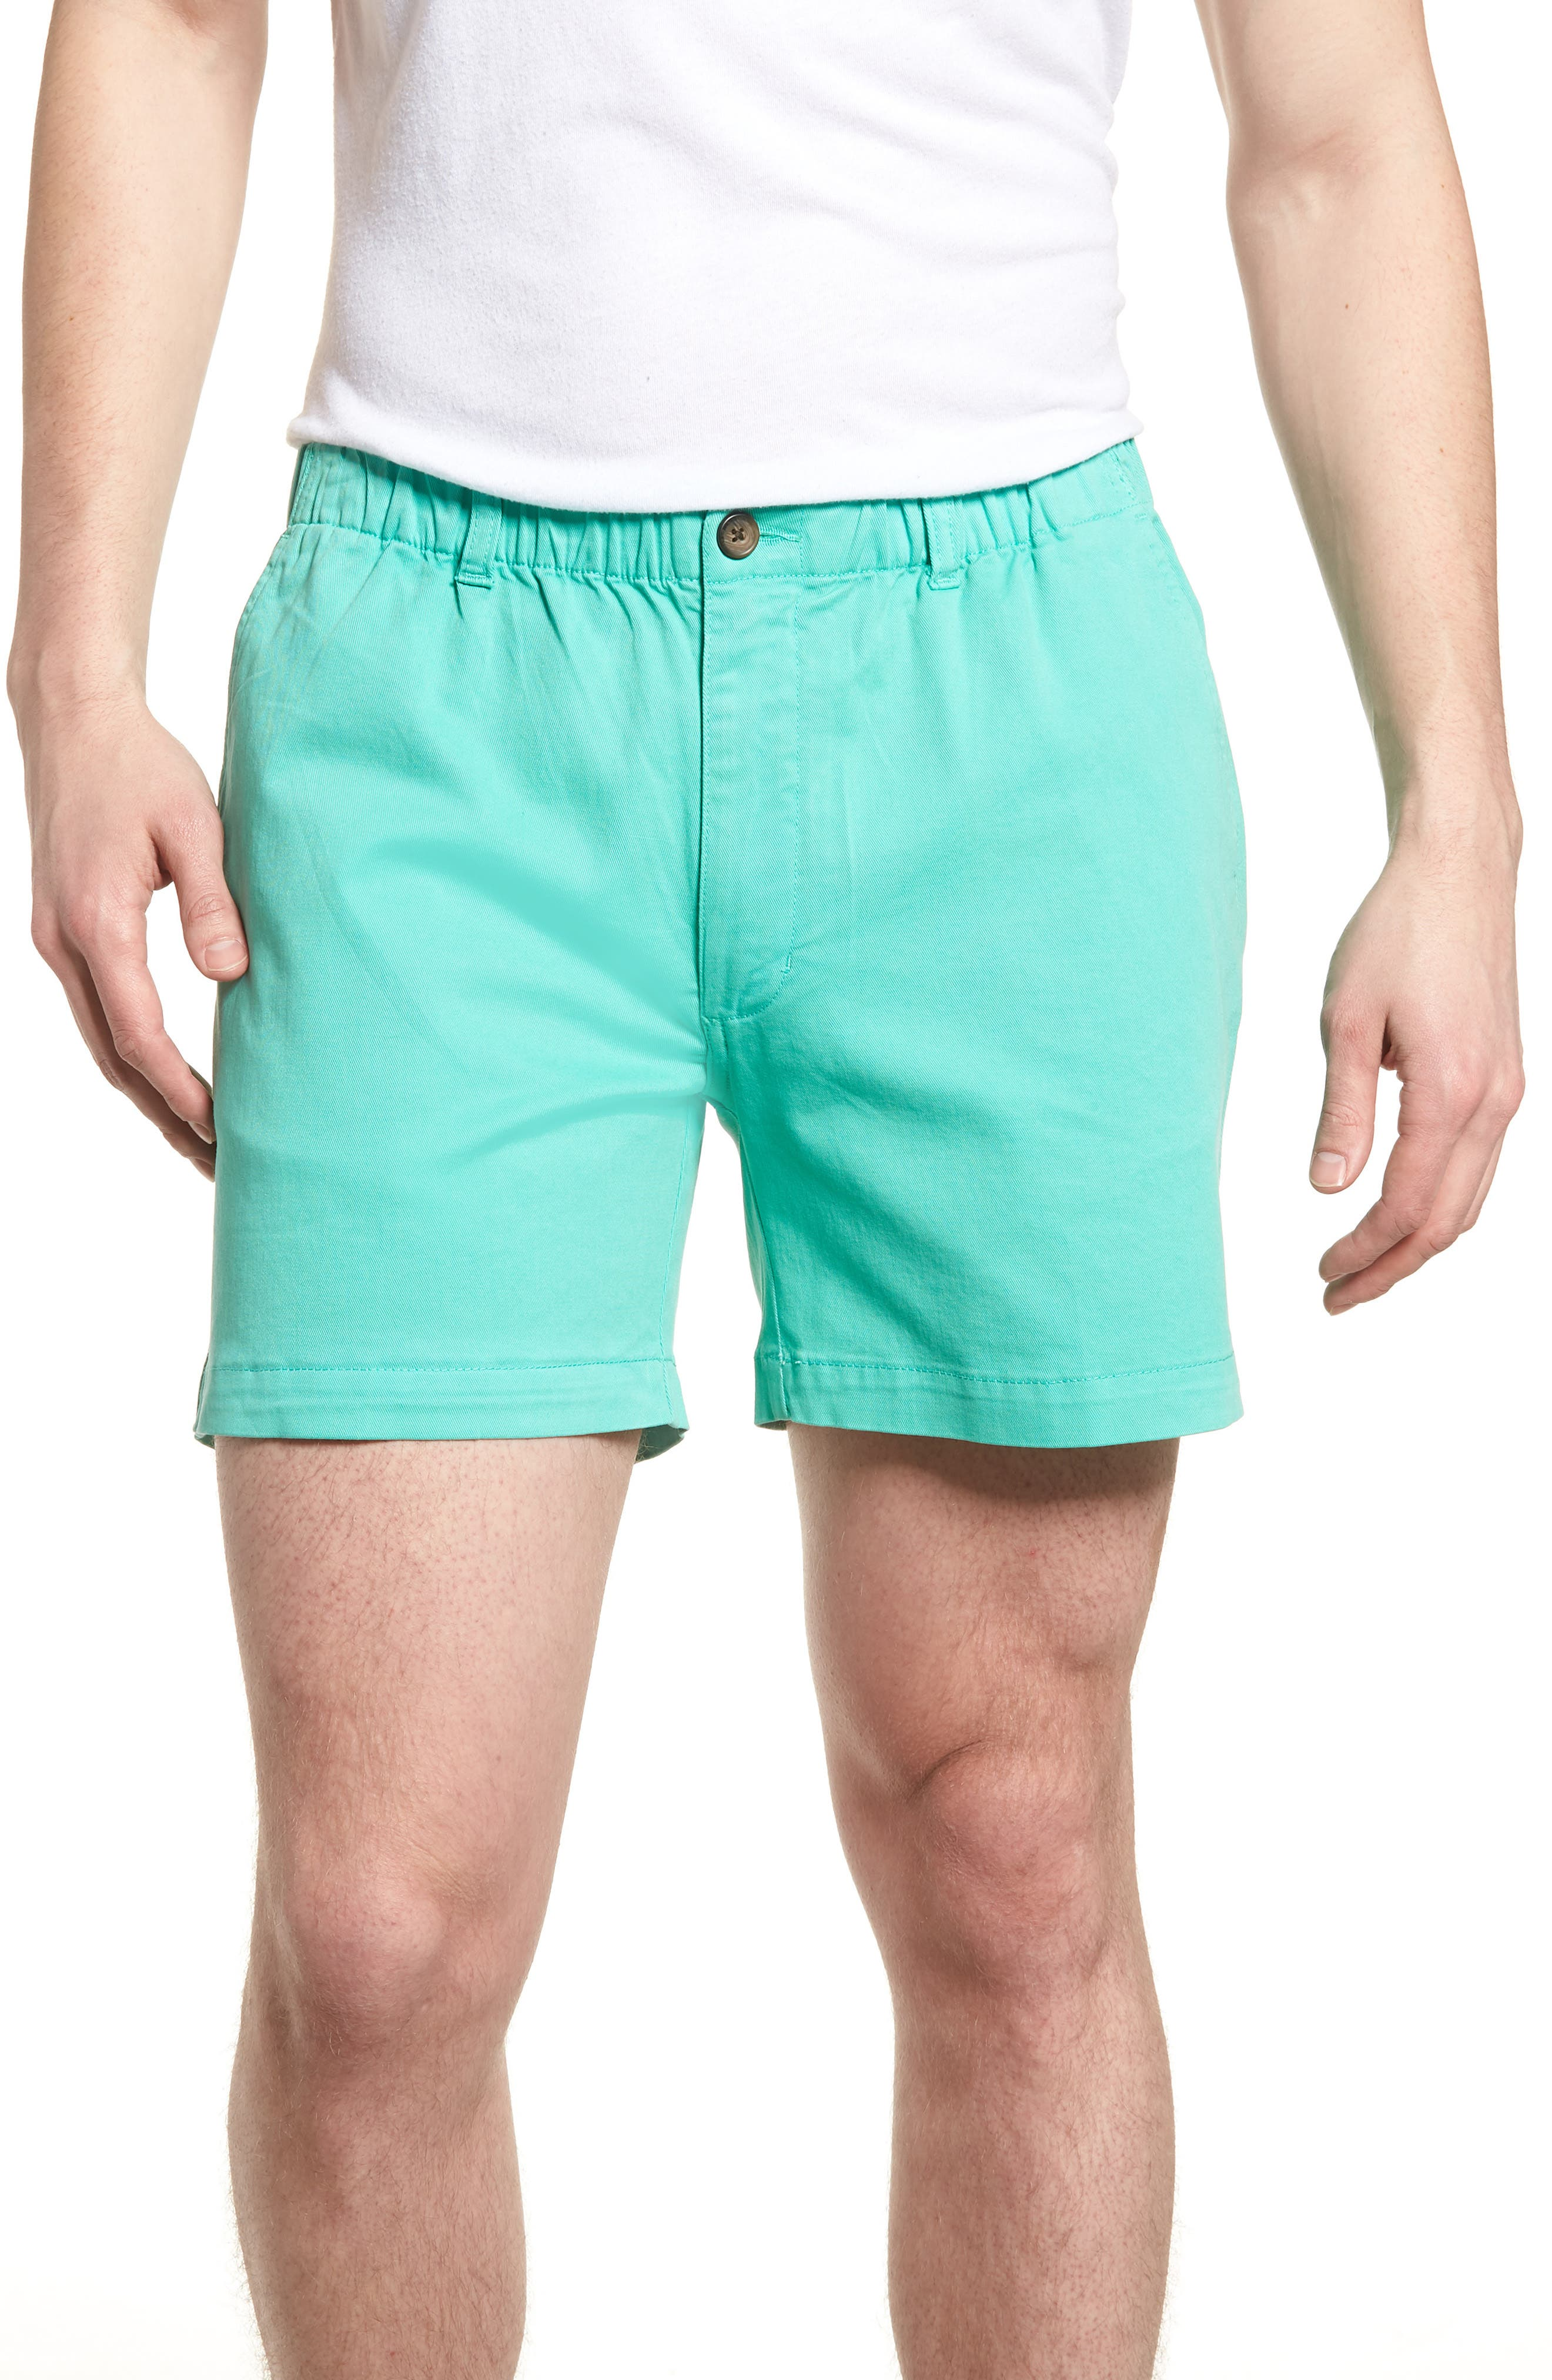 Vintage Men's Swimsuits – 1930s to 1970s History Mens Vintage 1946 Snappers Elastic Waist 5.5 Inch Stretch Shorts Size X-Large - Bluegreen $55.00 AT vintagedancer.com